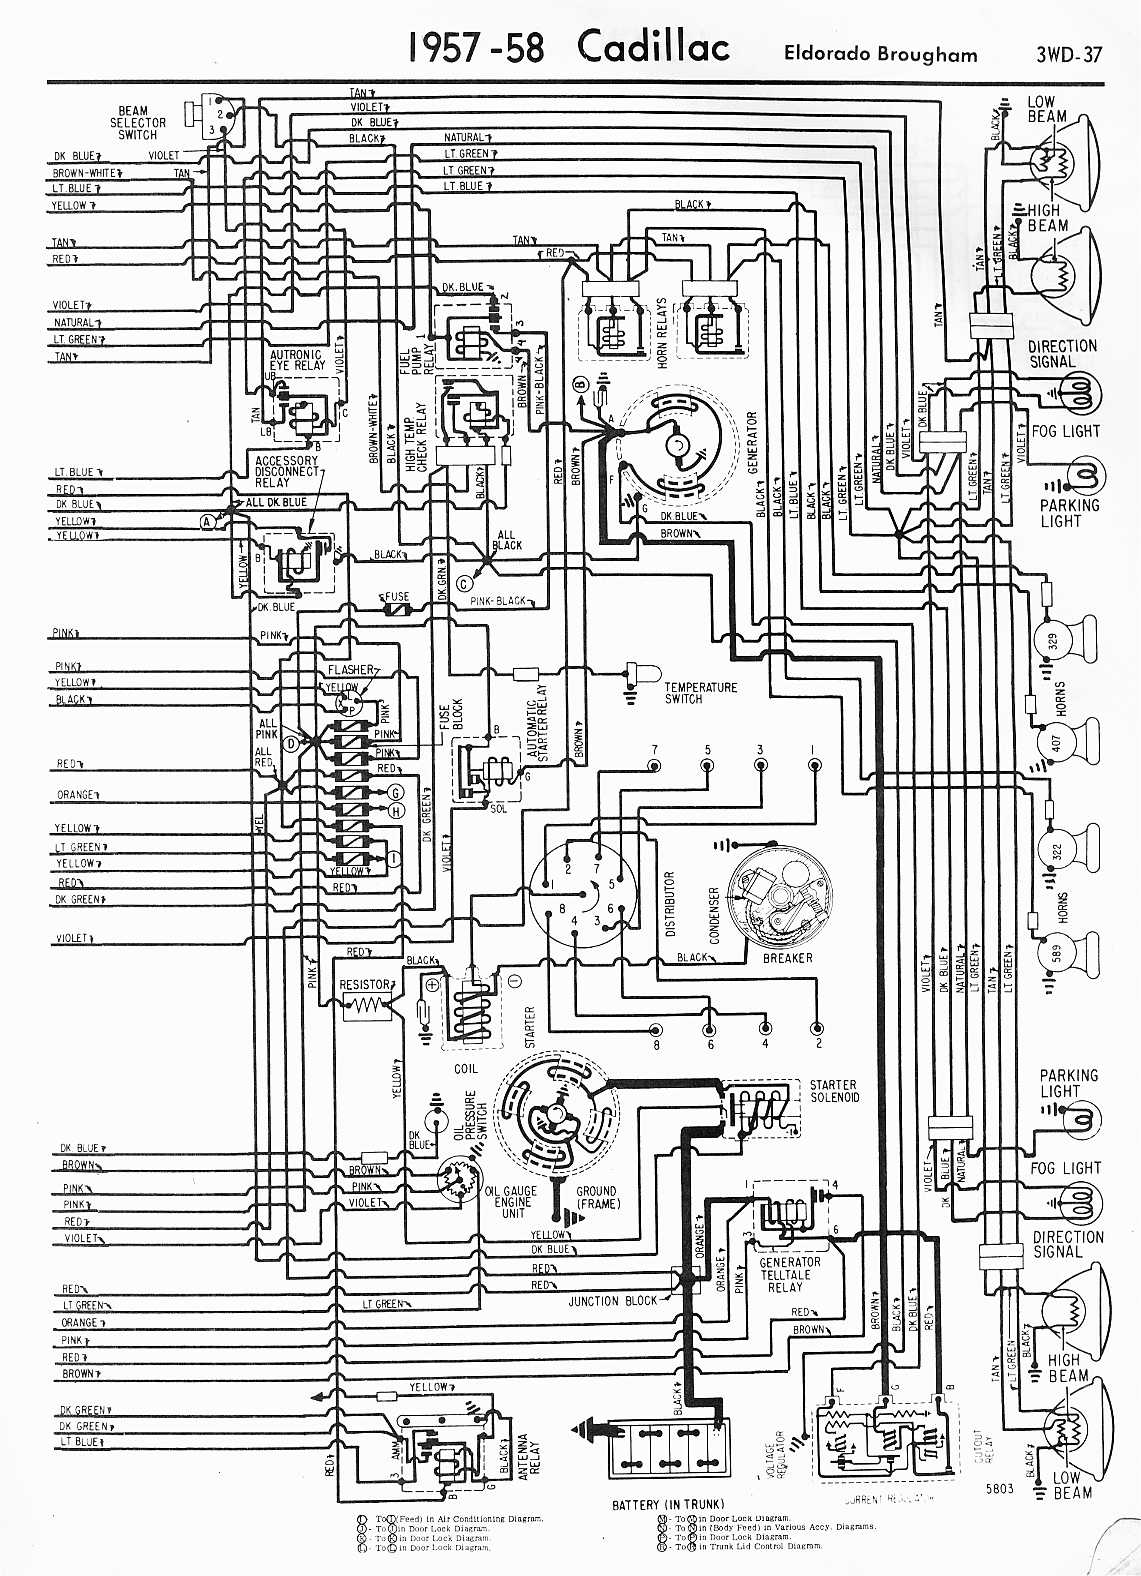 MWireCadi65_3WD 037 cadillac wiring diagrams 1957 1965 70 Cadillac Eldorado at bakdesigns.co